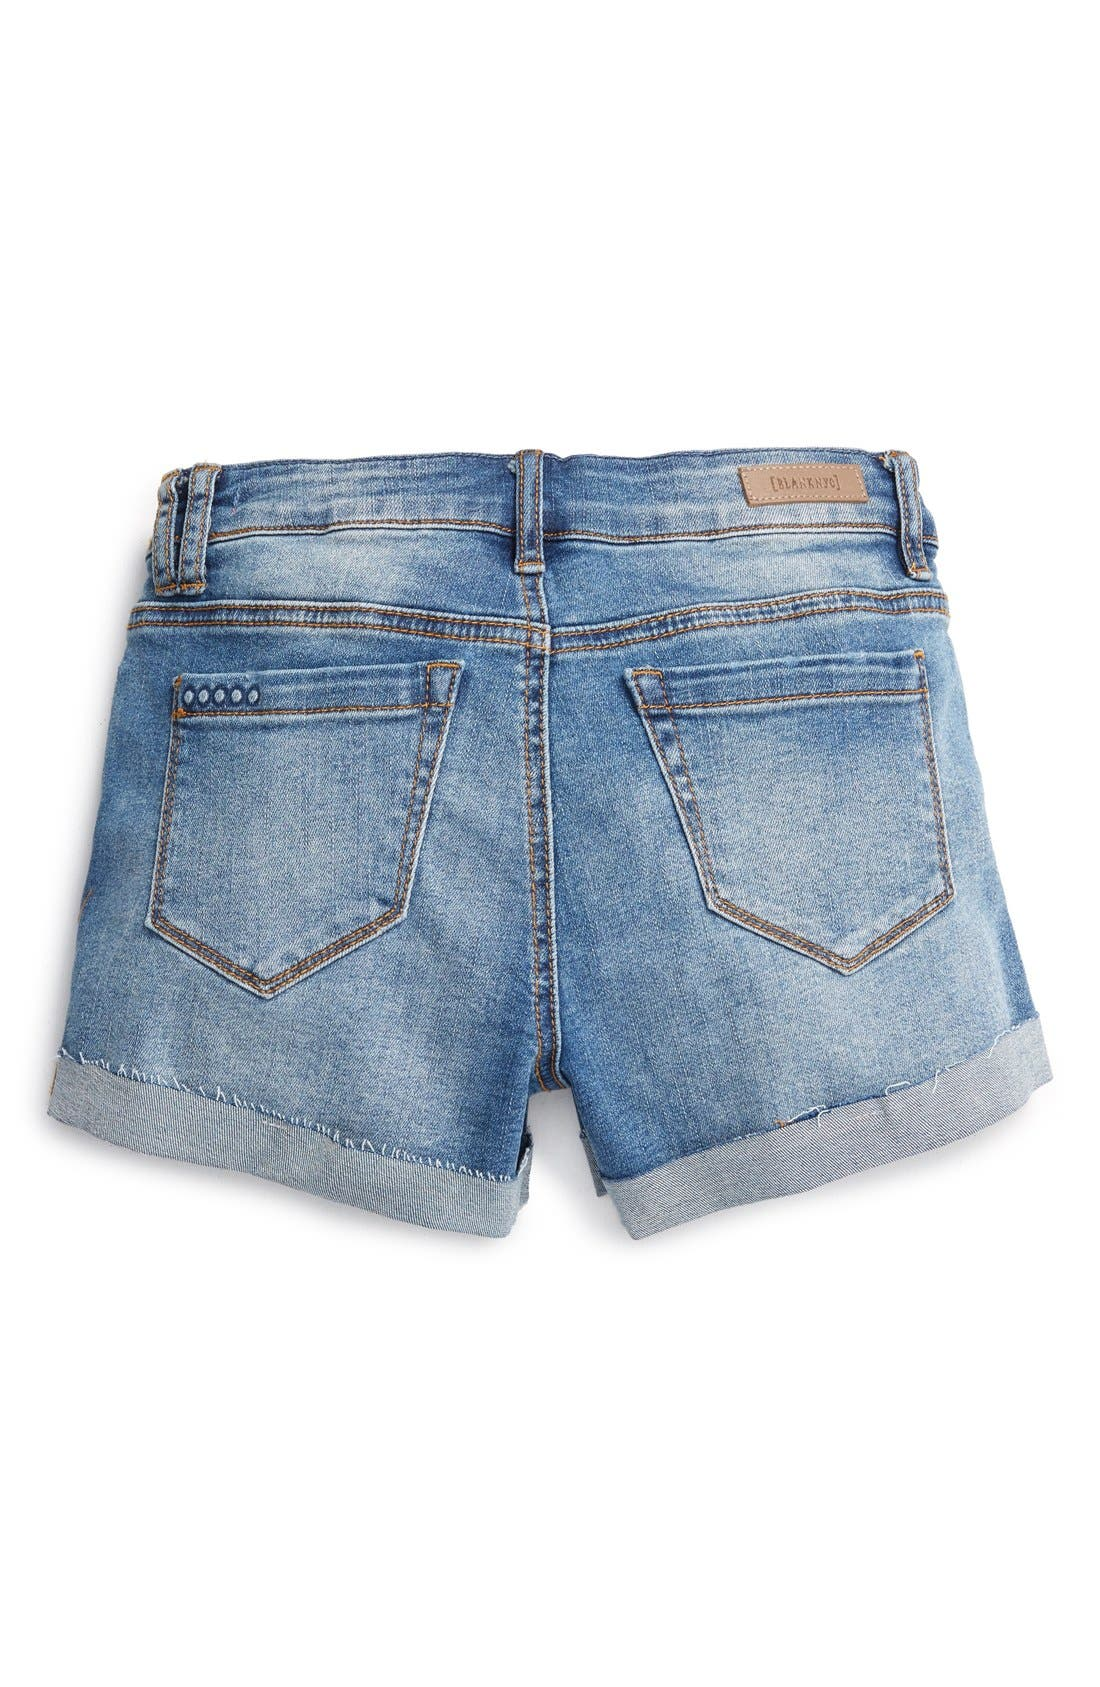 Distressed Roll Cuff Shorts,                             Alternate thumbnail 2, color,                             Weekend Warrior